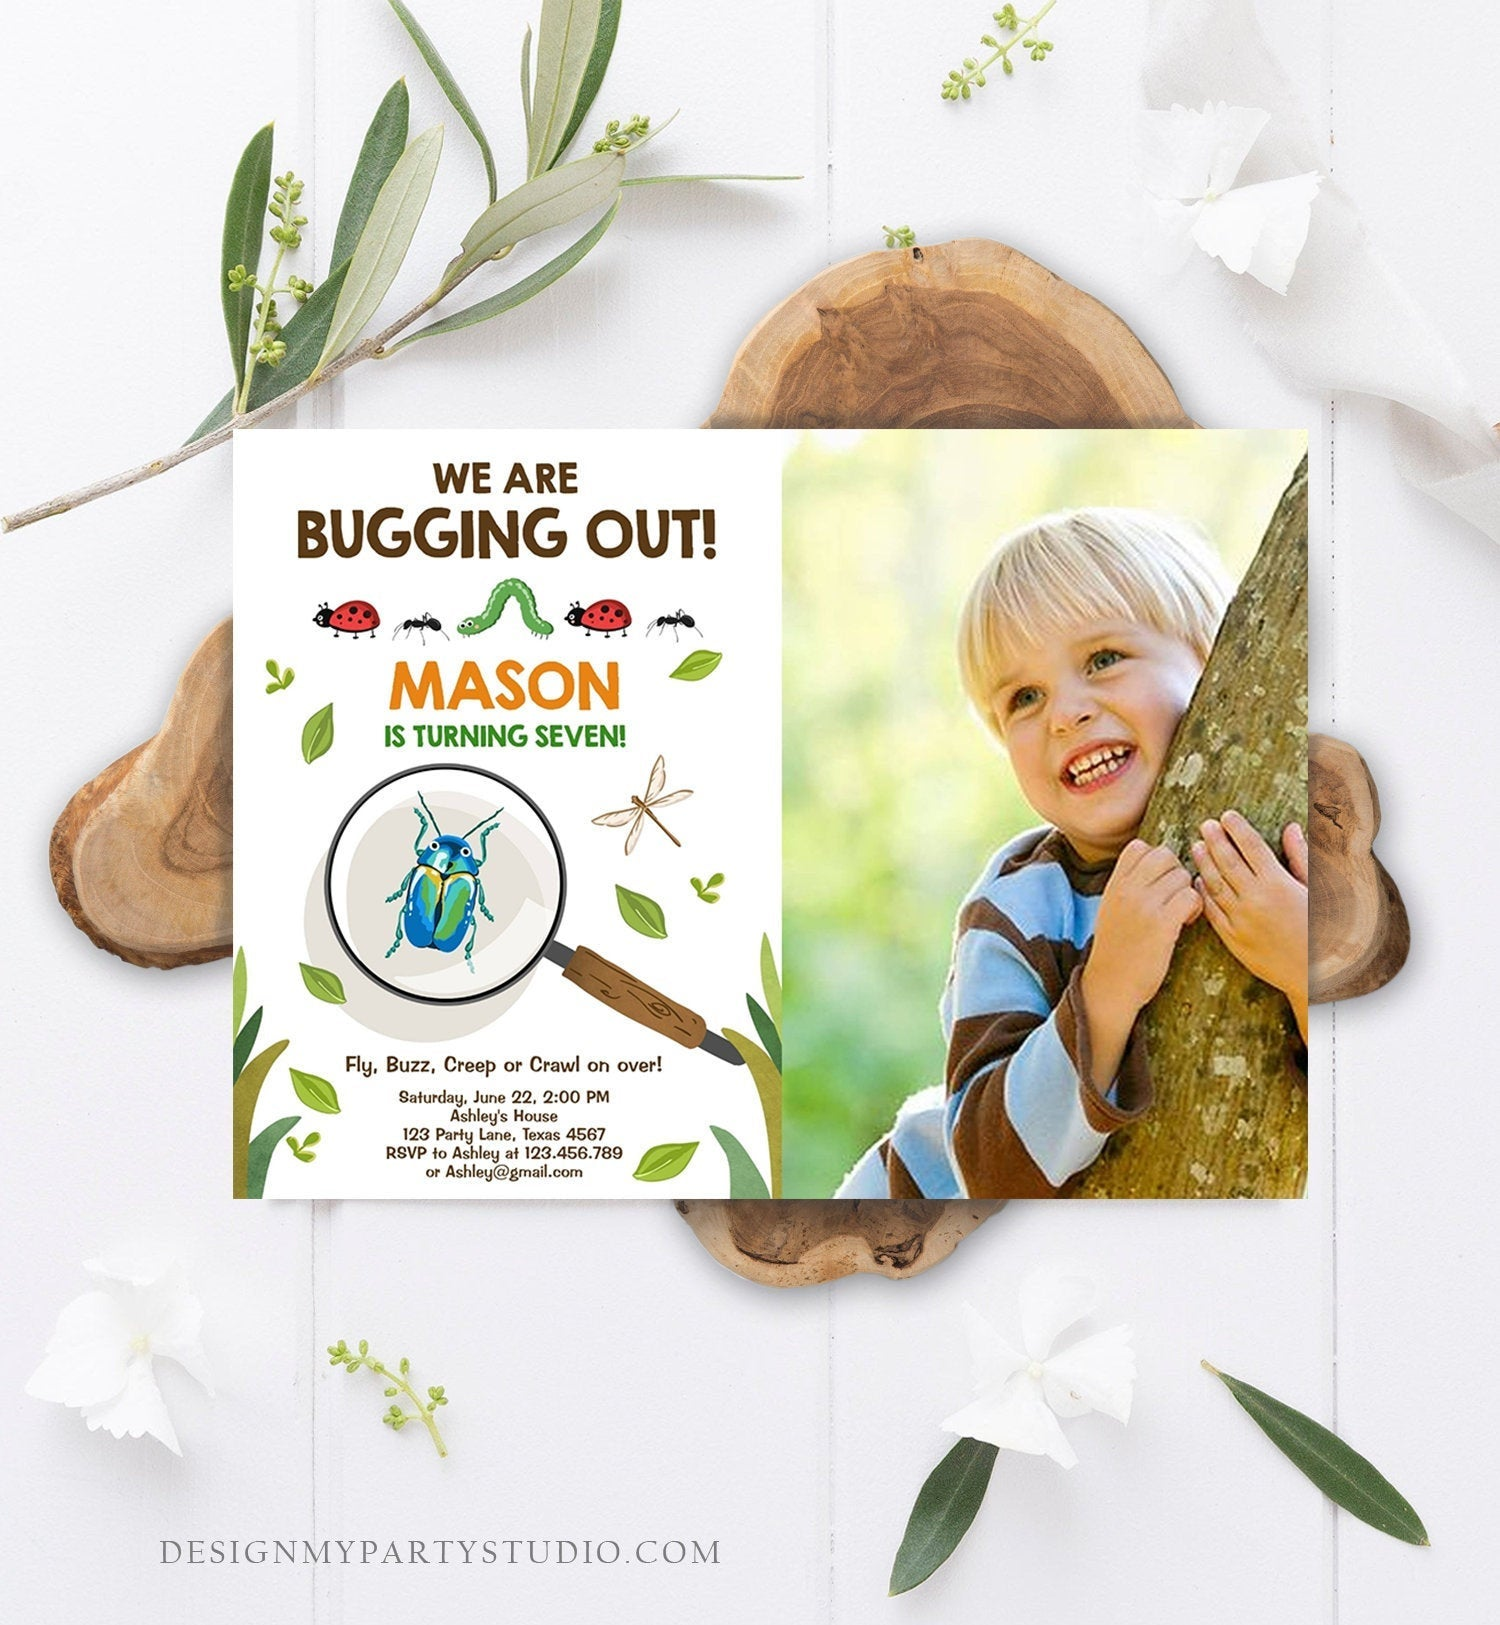 Editable Bug Birthday Invitation Insect Party We Are Bugging Out bug Hunt Bugs Boy Printable Invitation Template Digital Corjl 0090